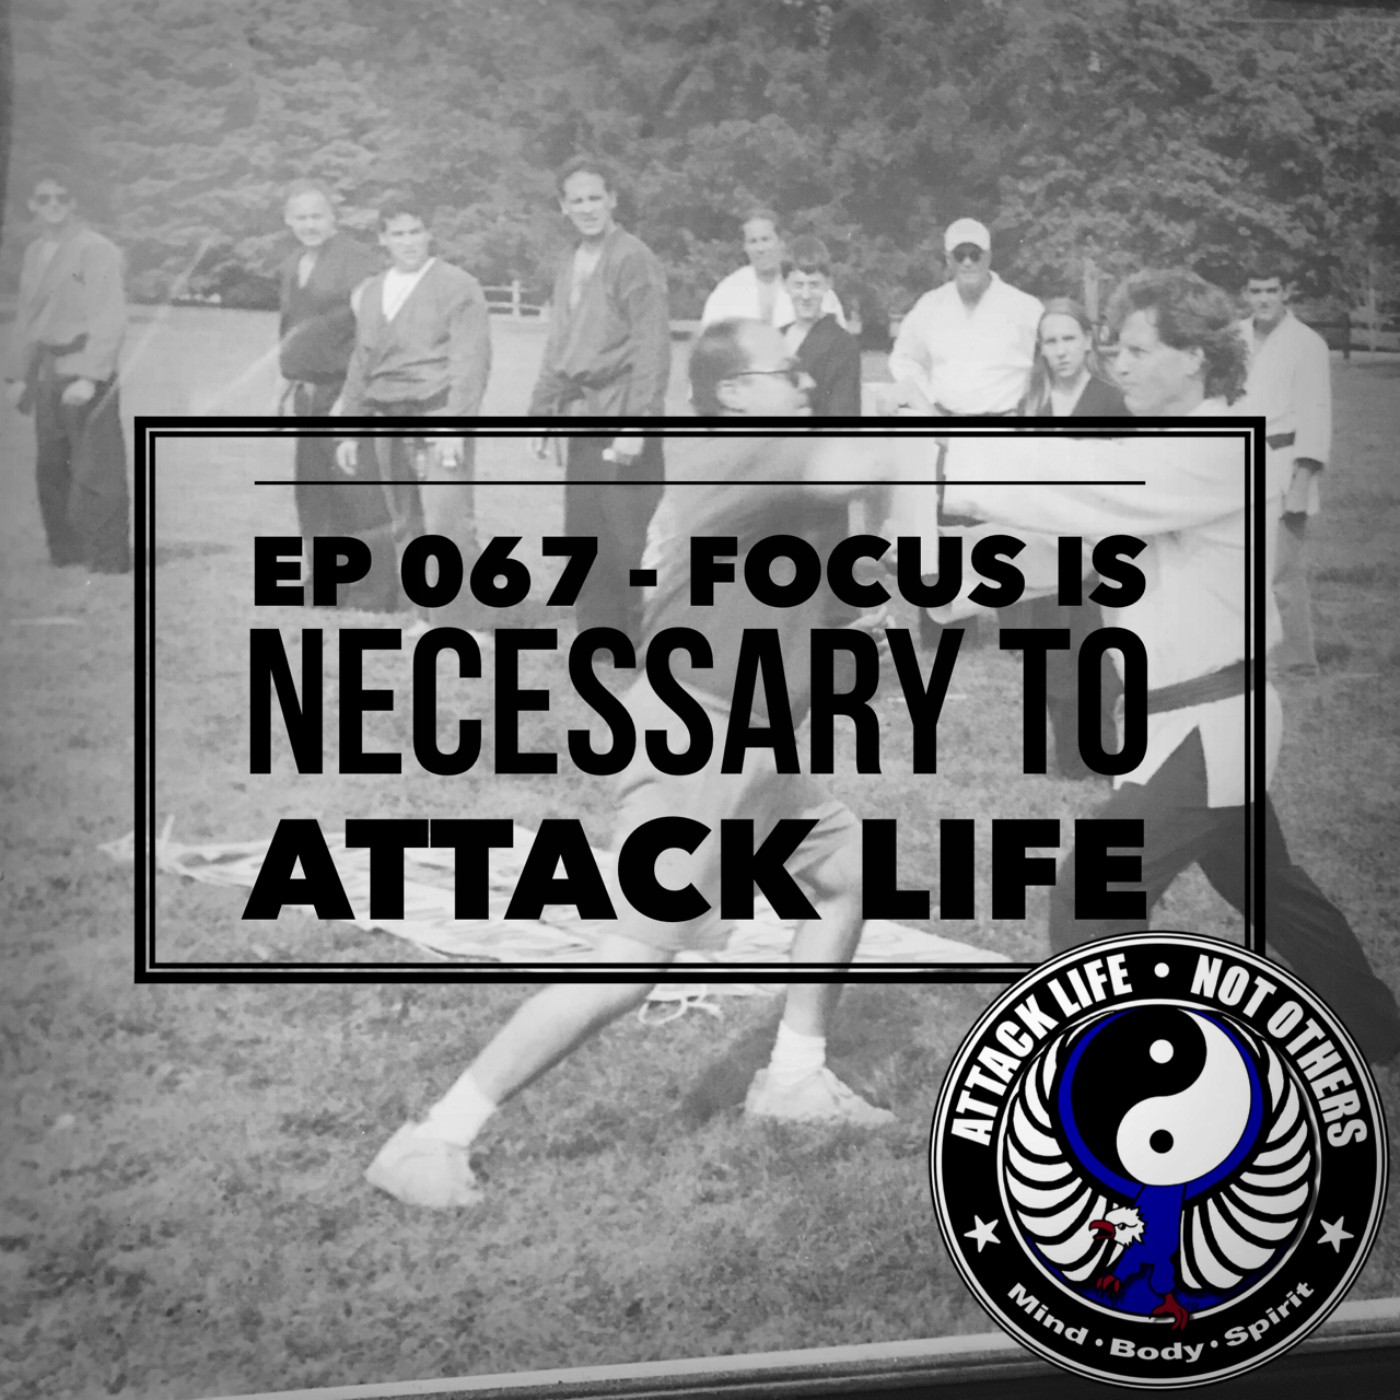 Ep 067 - Focus is Necessary to Attack Life